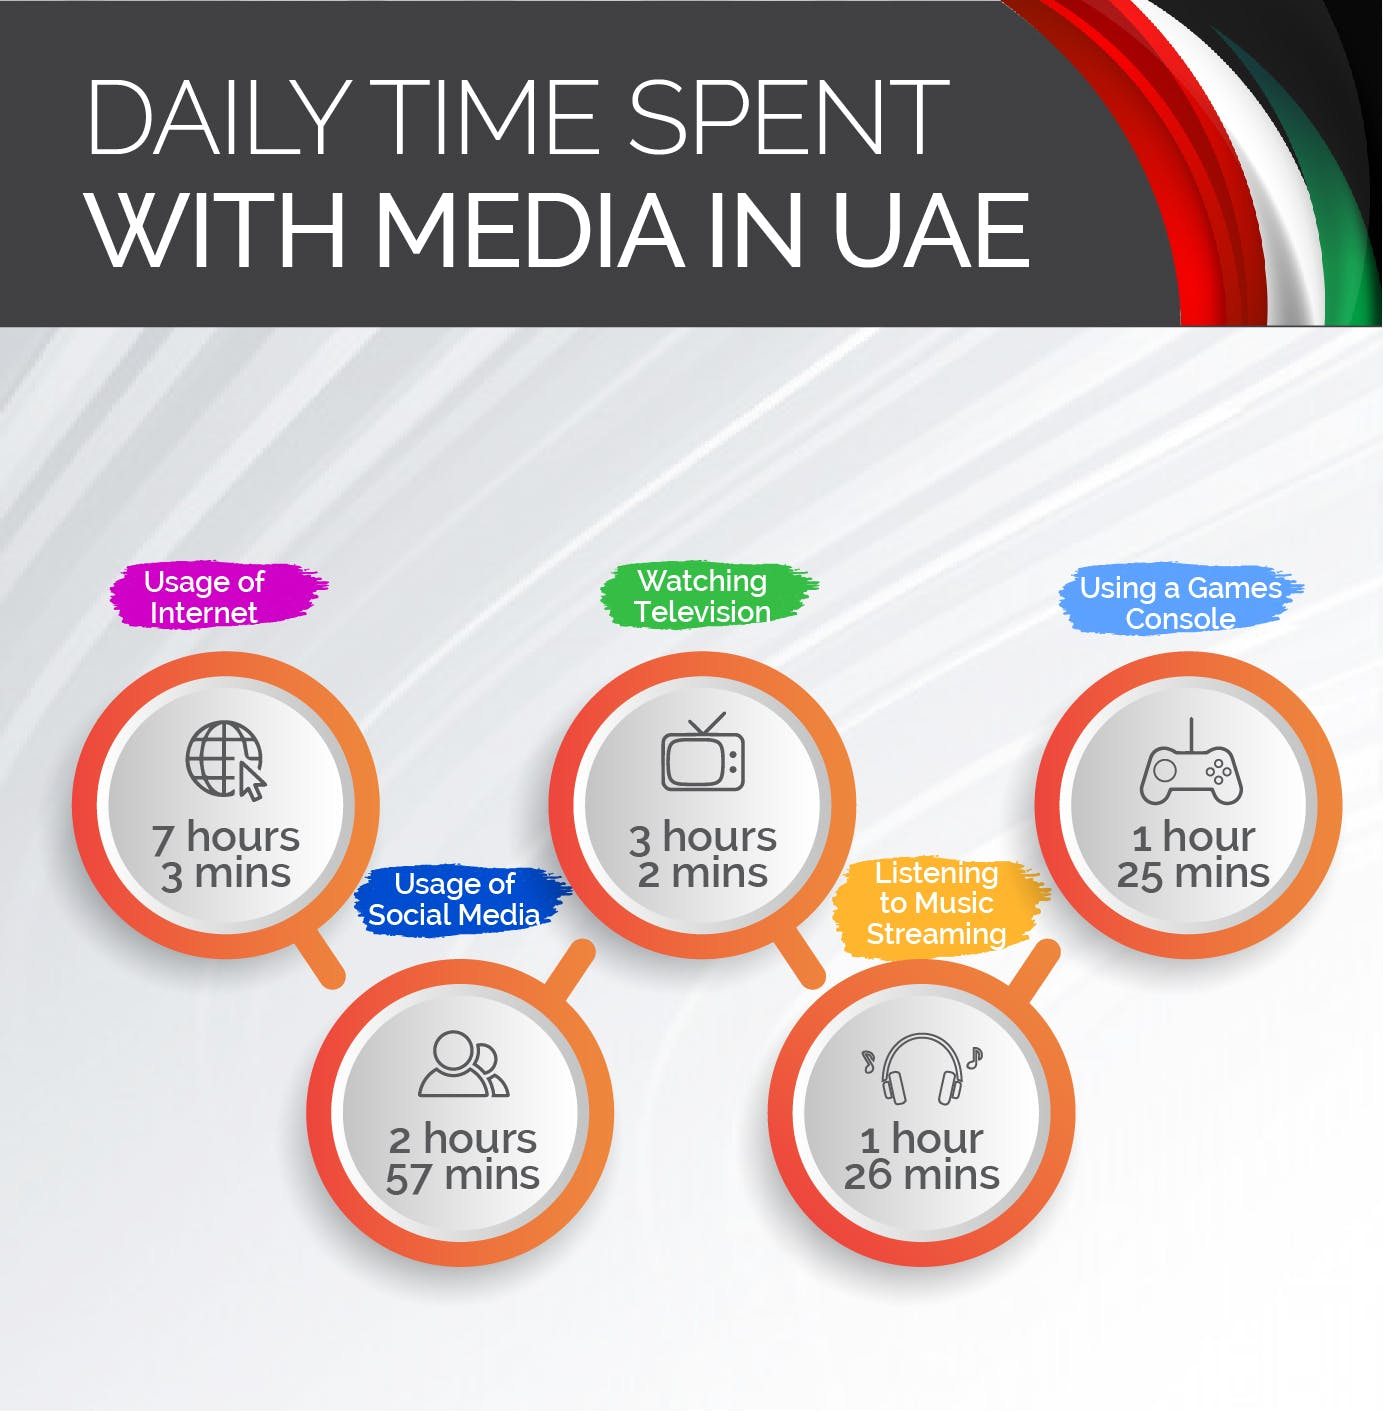 daily time spent with media in UAE 2020